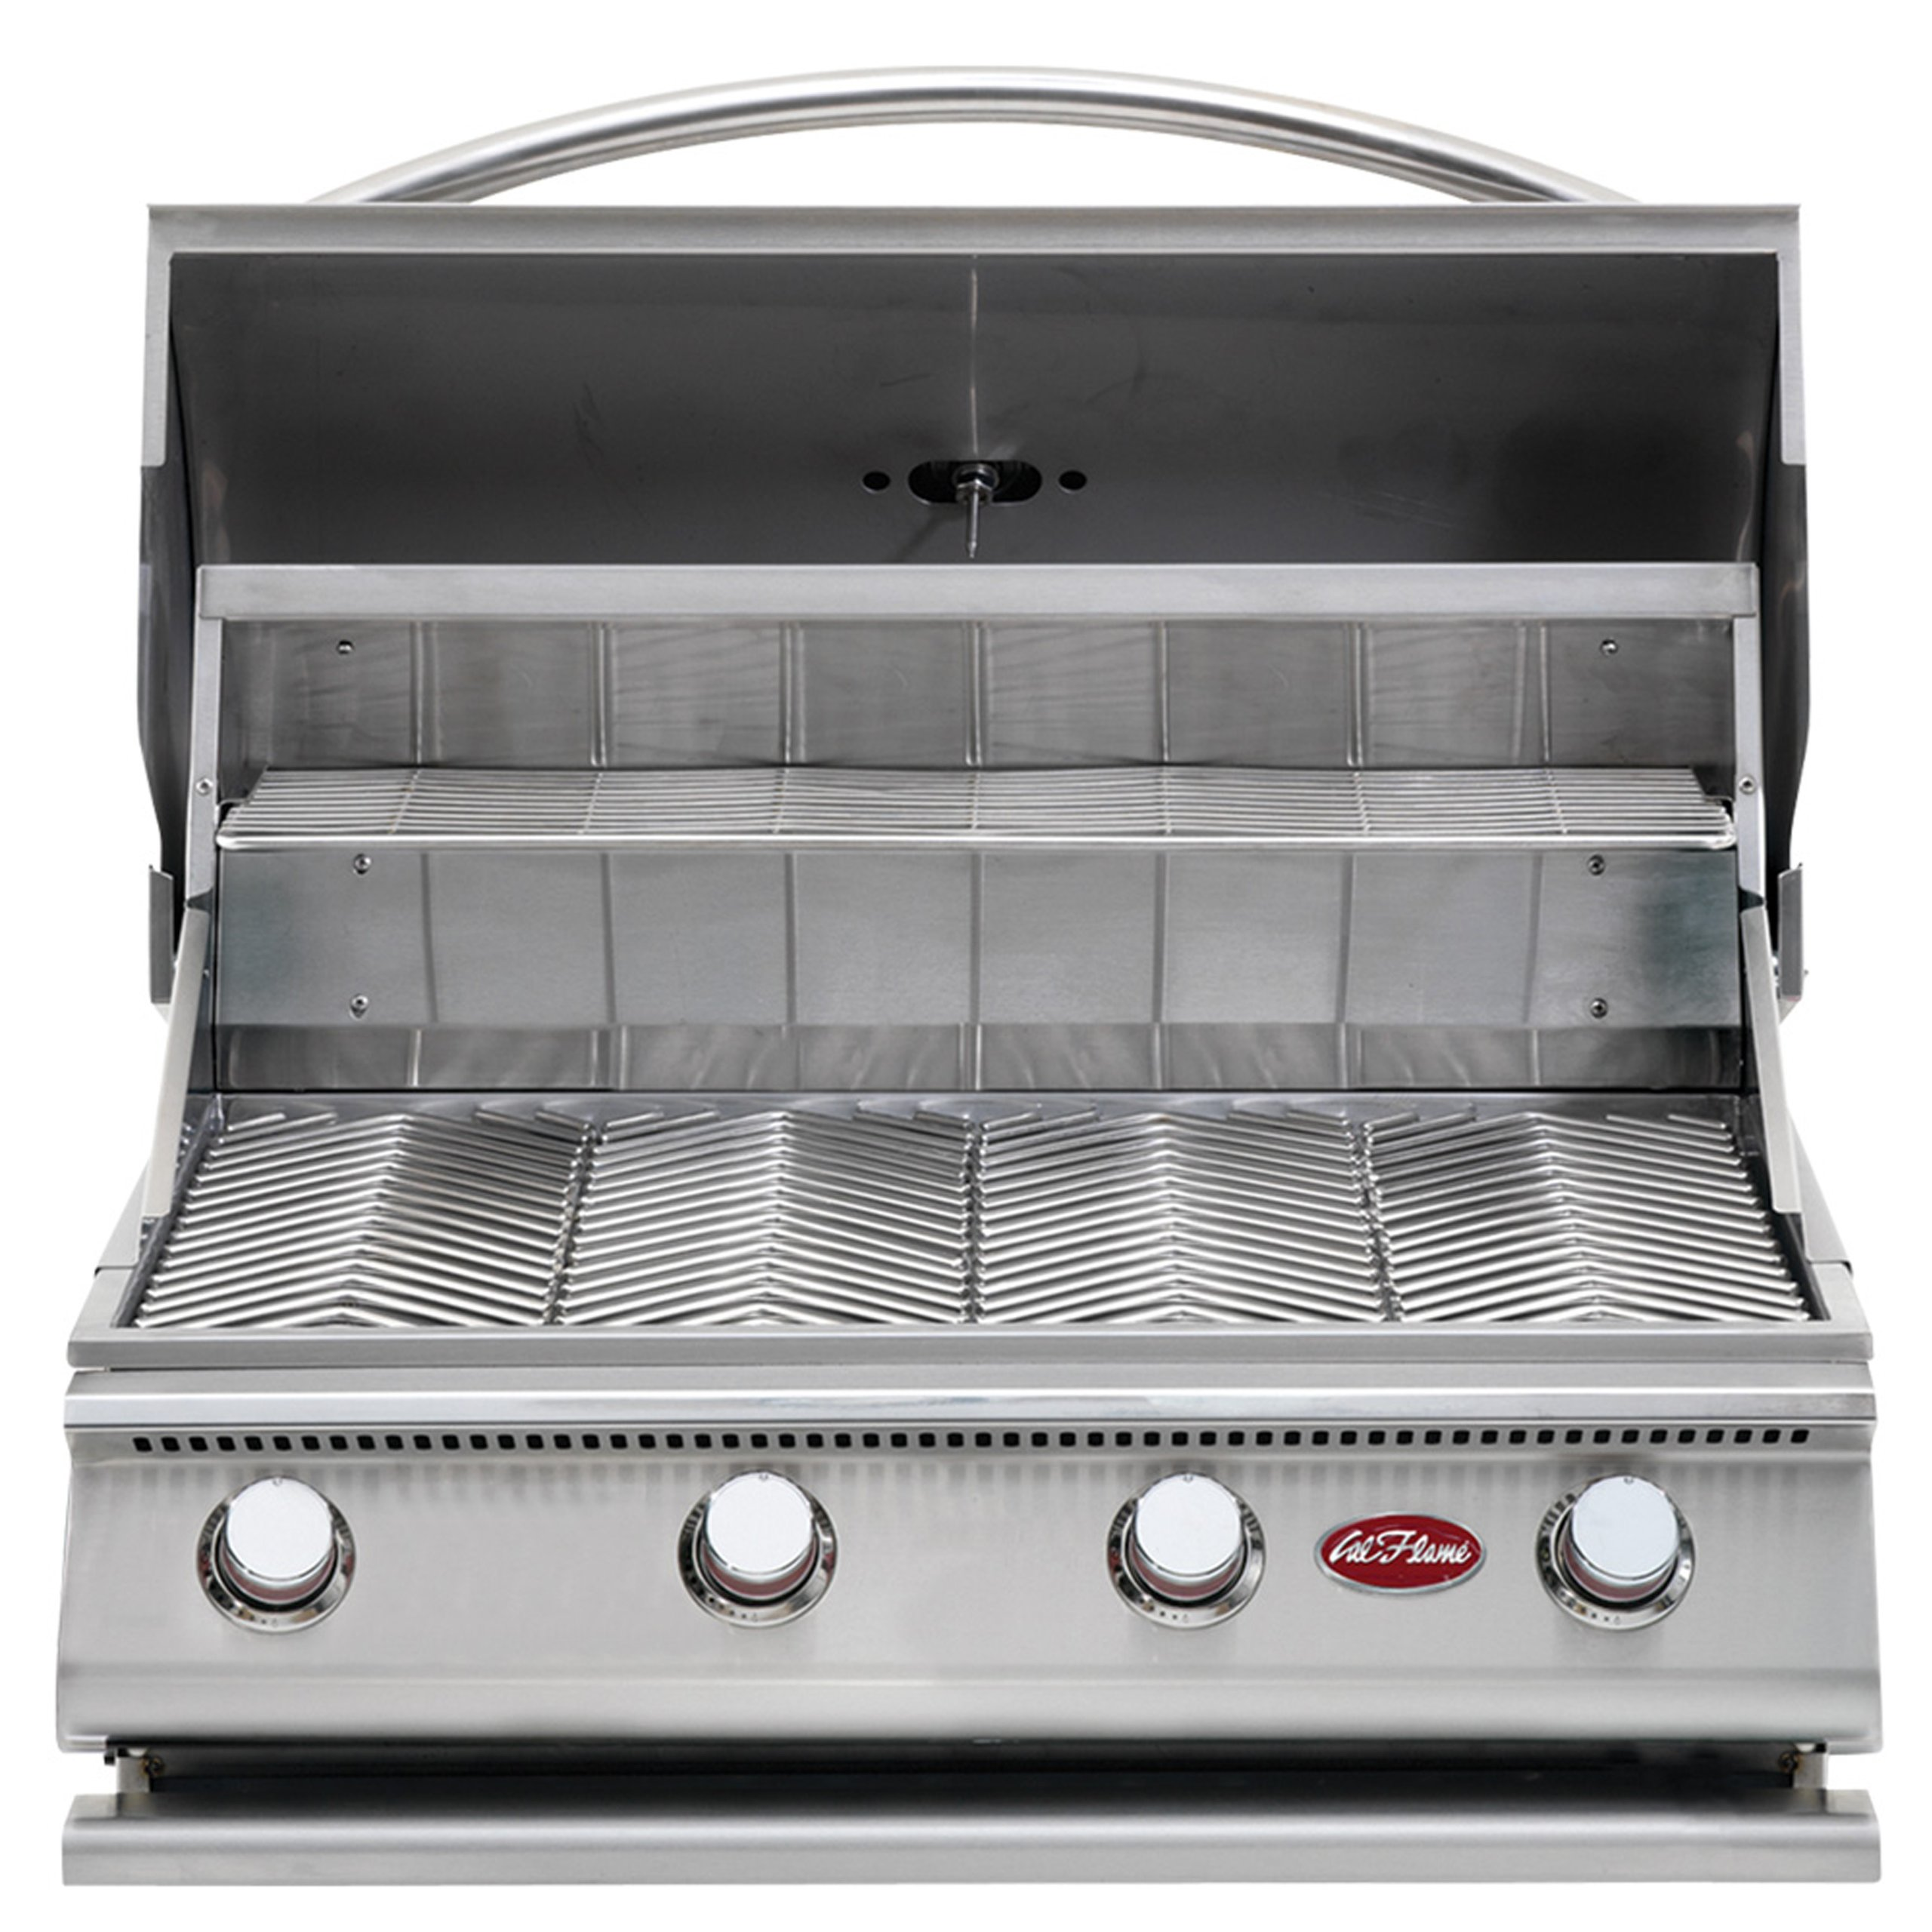 Cal Flame BBQ08G04 G-Series 4-Burner Grill